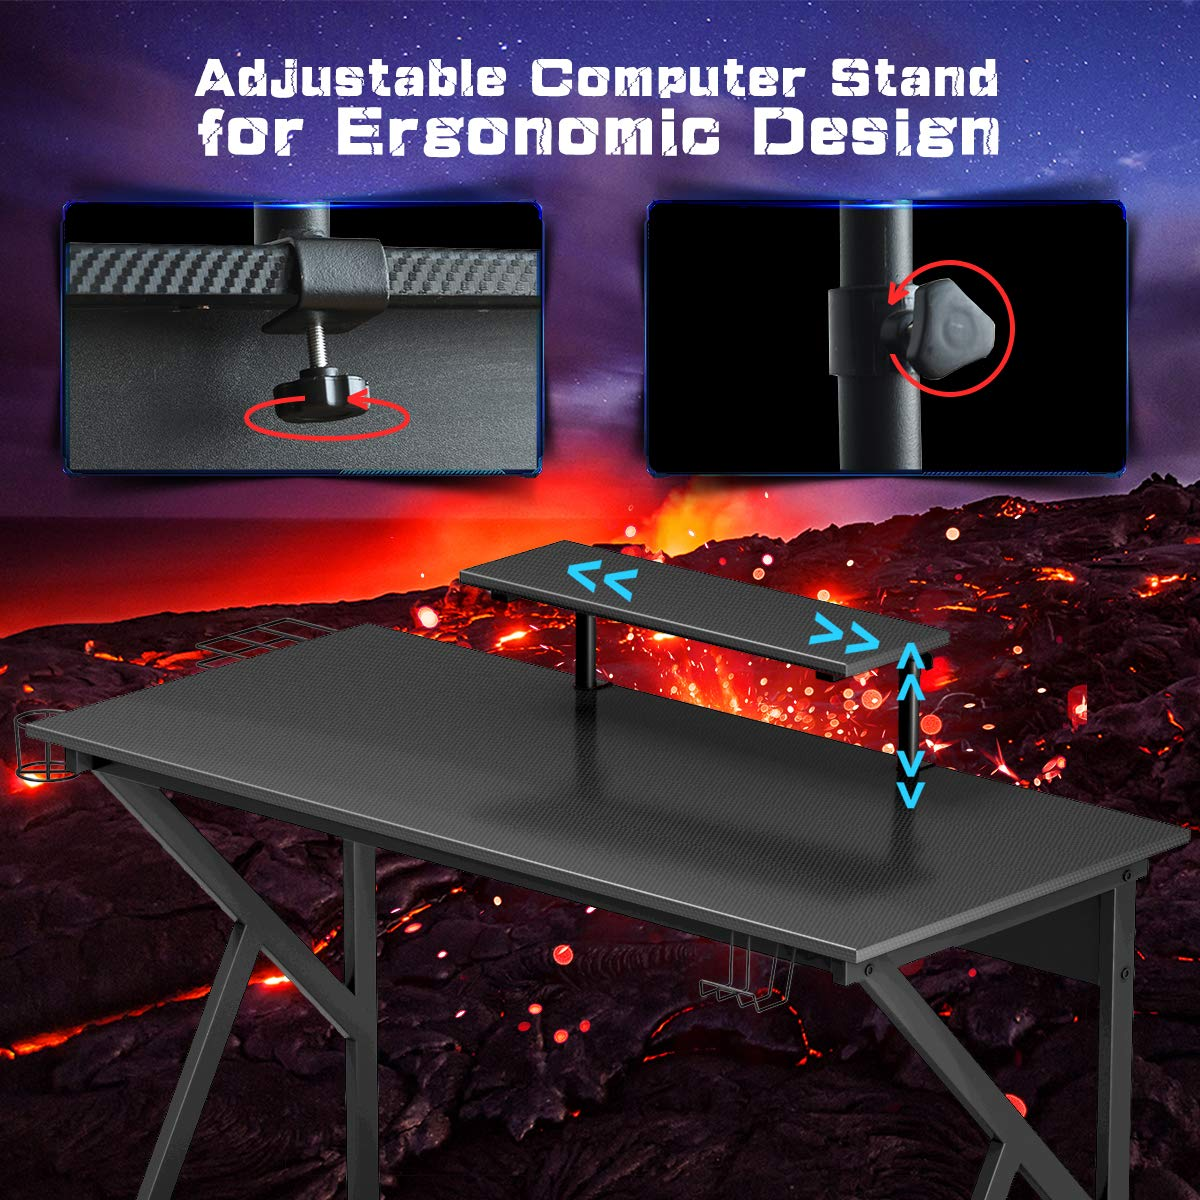 K-Shaped Sport Table Lx W x H 47.5X22X29.5 Ergonomic Racing E-Sports Gamers Computer Desk PC Laptop Table/ for Pro Gamers Gaming Workstation with Cup /& Headphone Holder Tangkula Gaming Desk